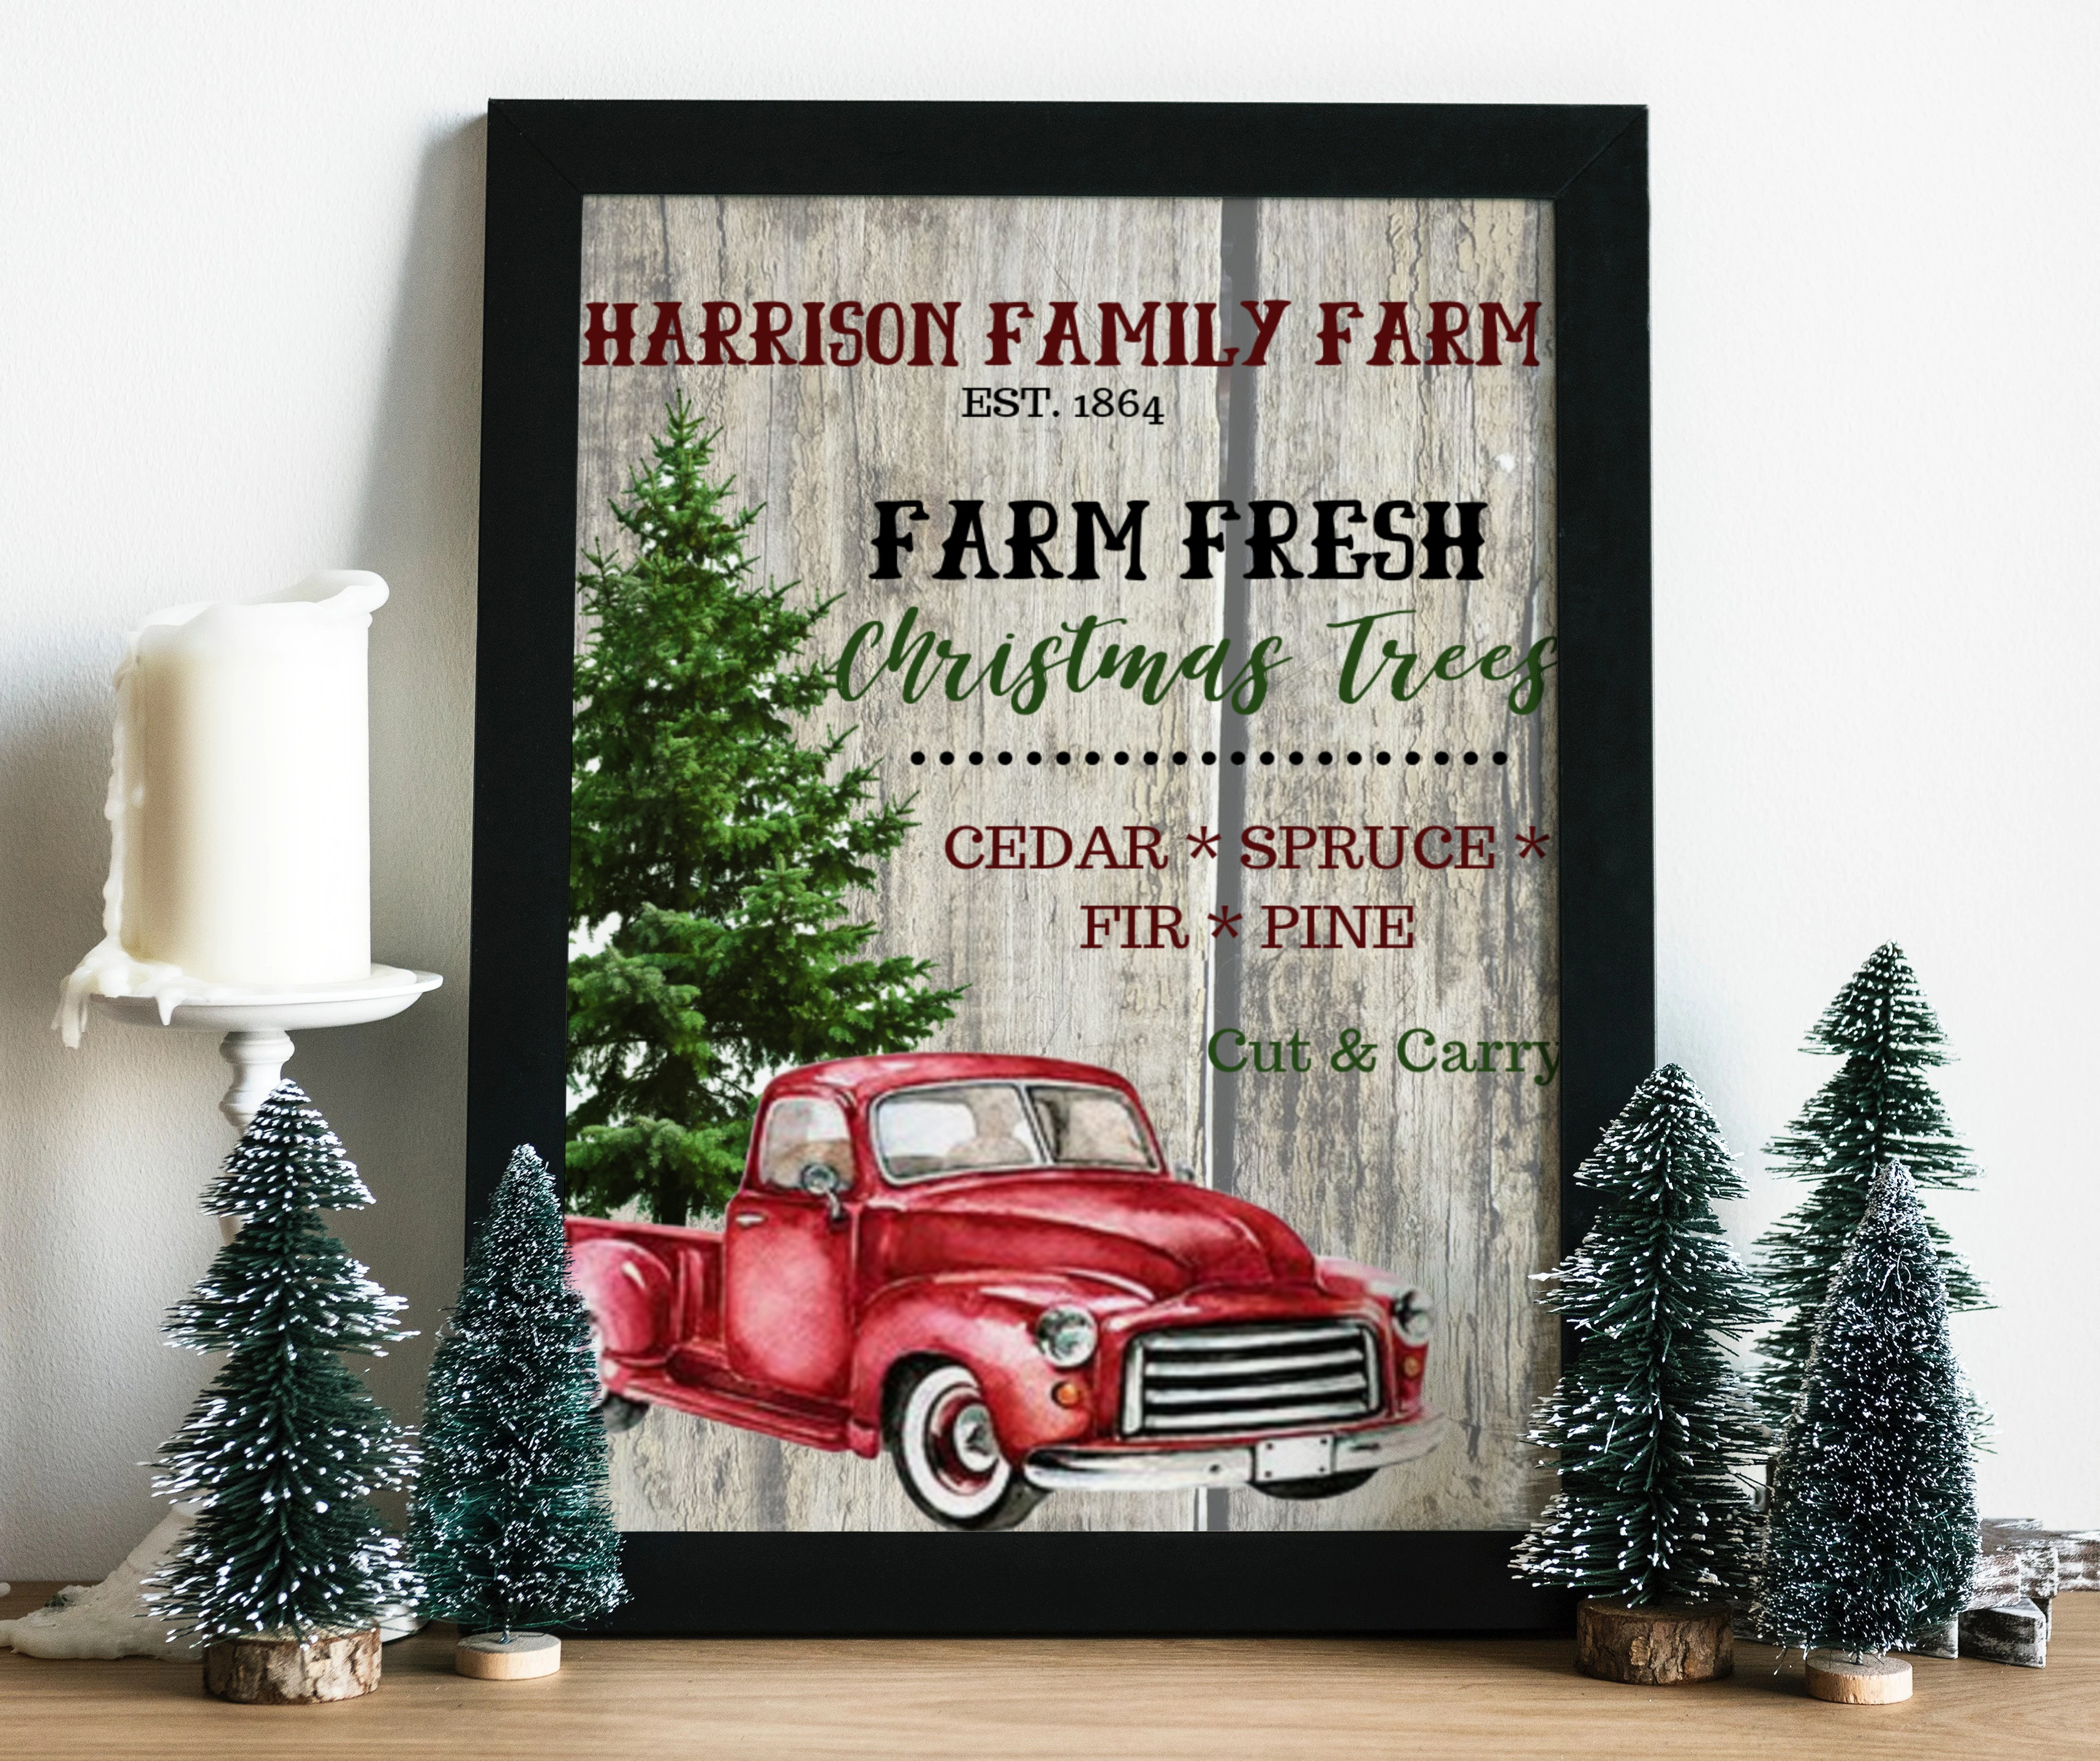 Vintage Red Truck Christmas Decor.Family Farm Christmas Tree Red Truck Custom Diy Christmas Decor Printable